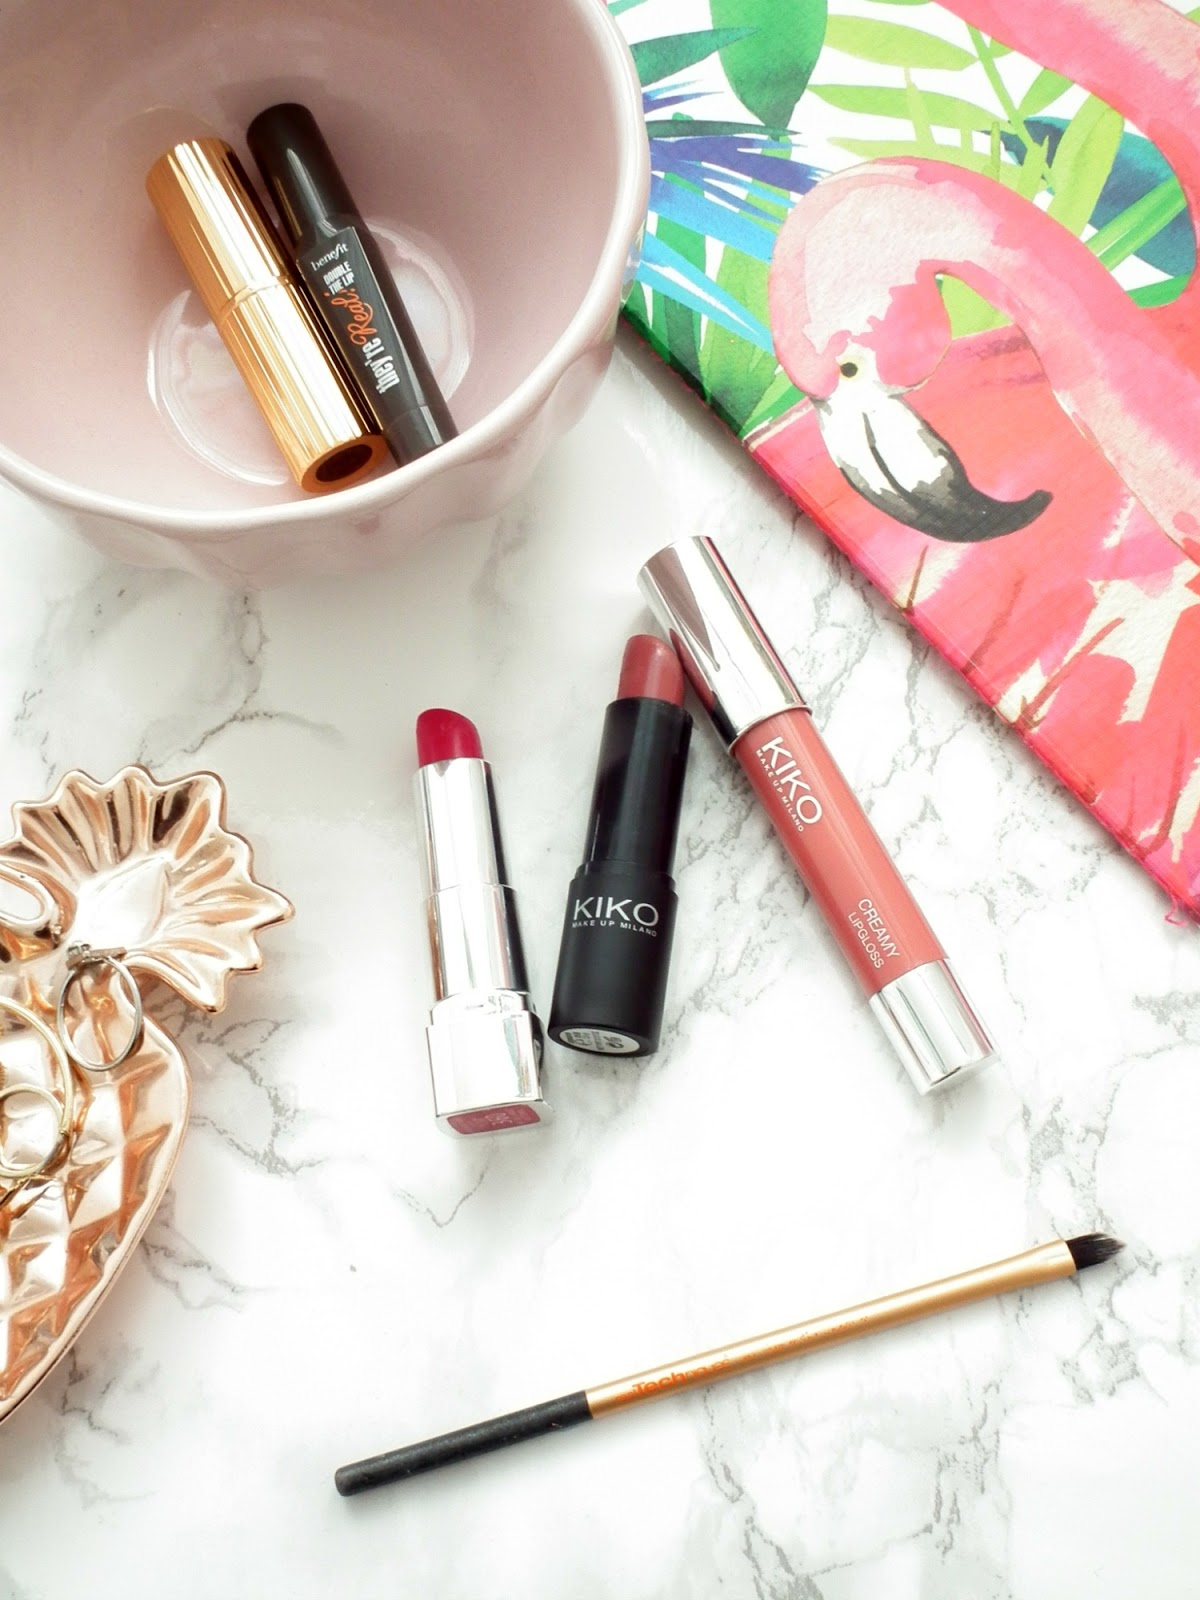 Nourishing Lip Options